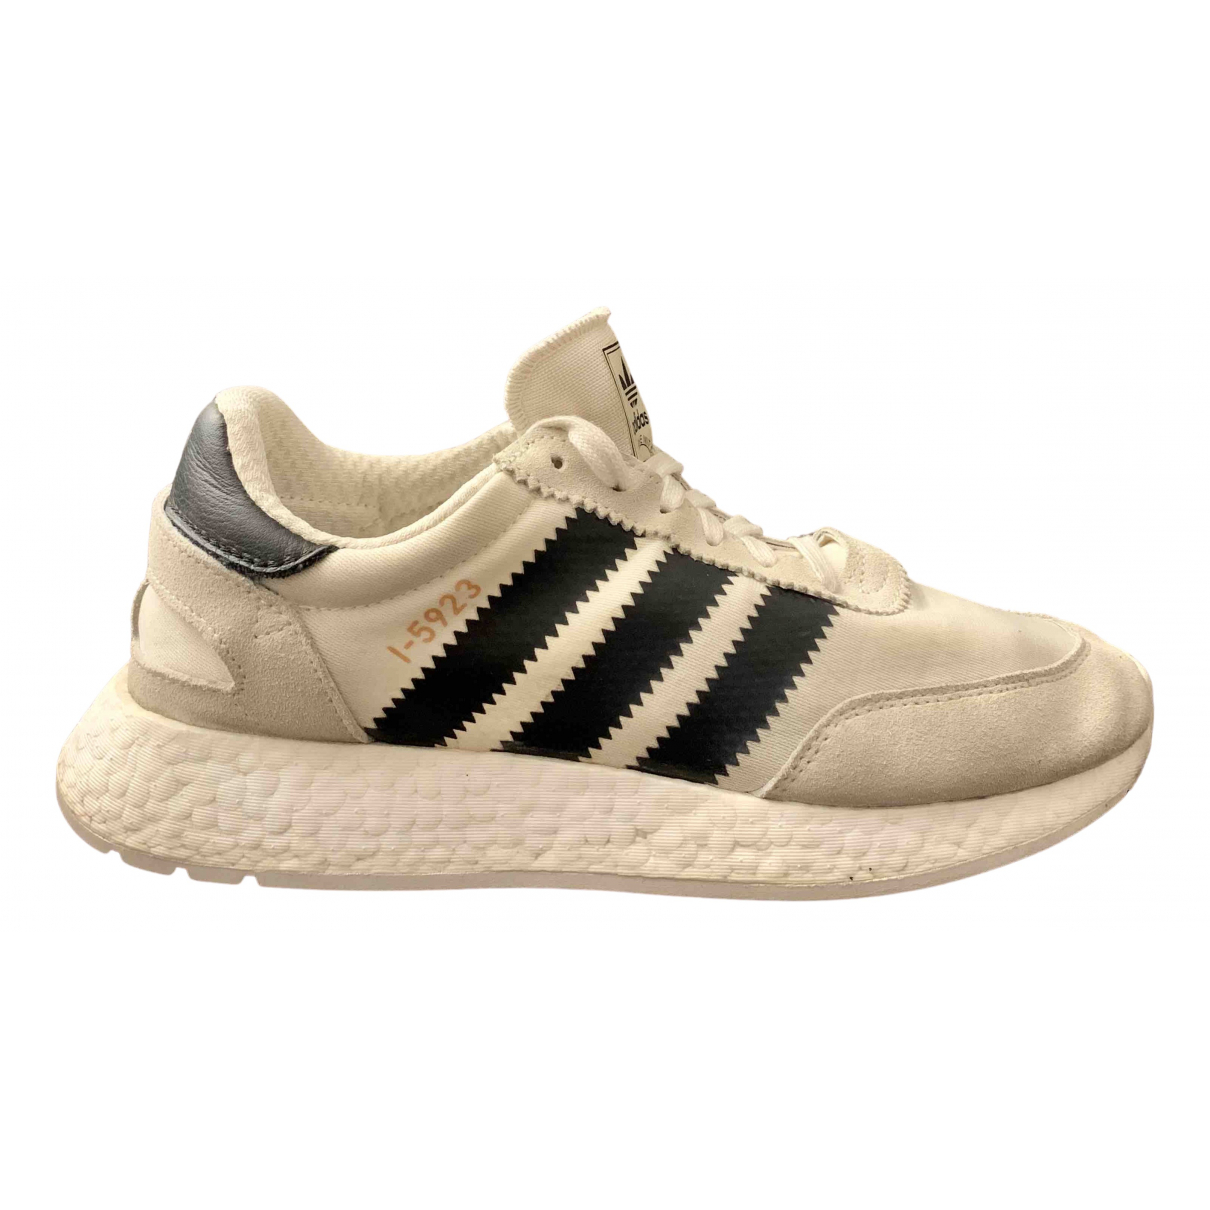 Adidas N Beige Trainers for Women 8 US